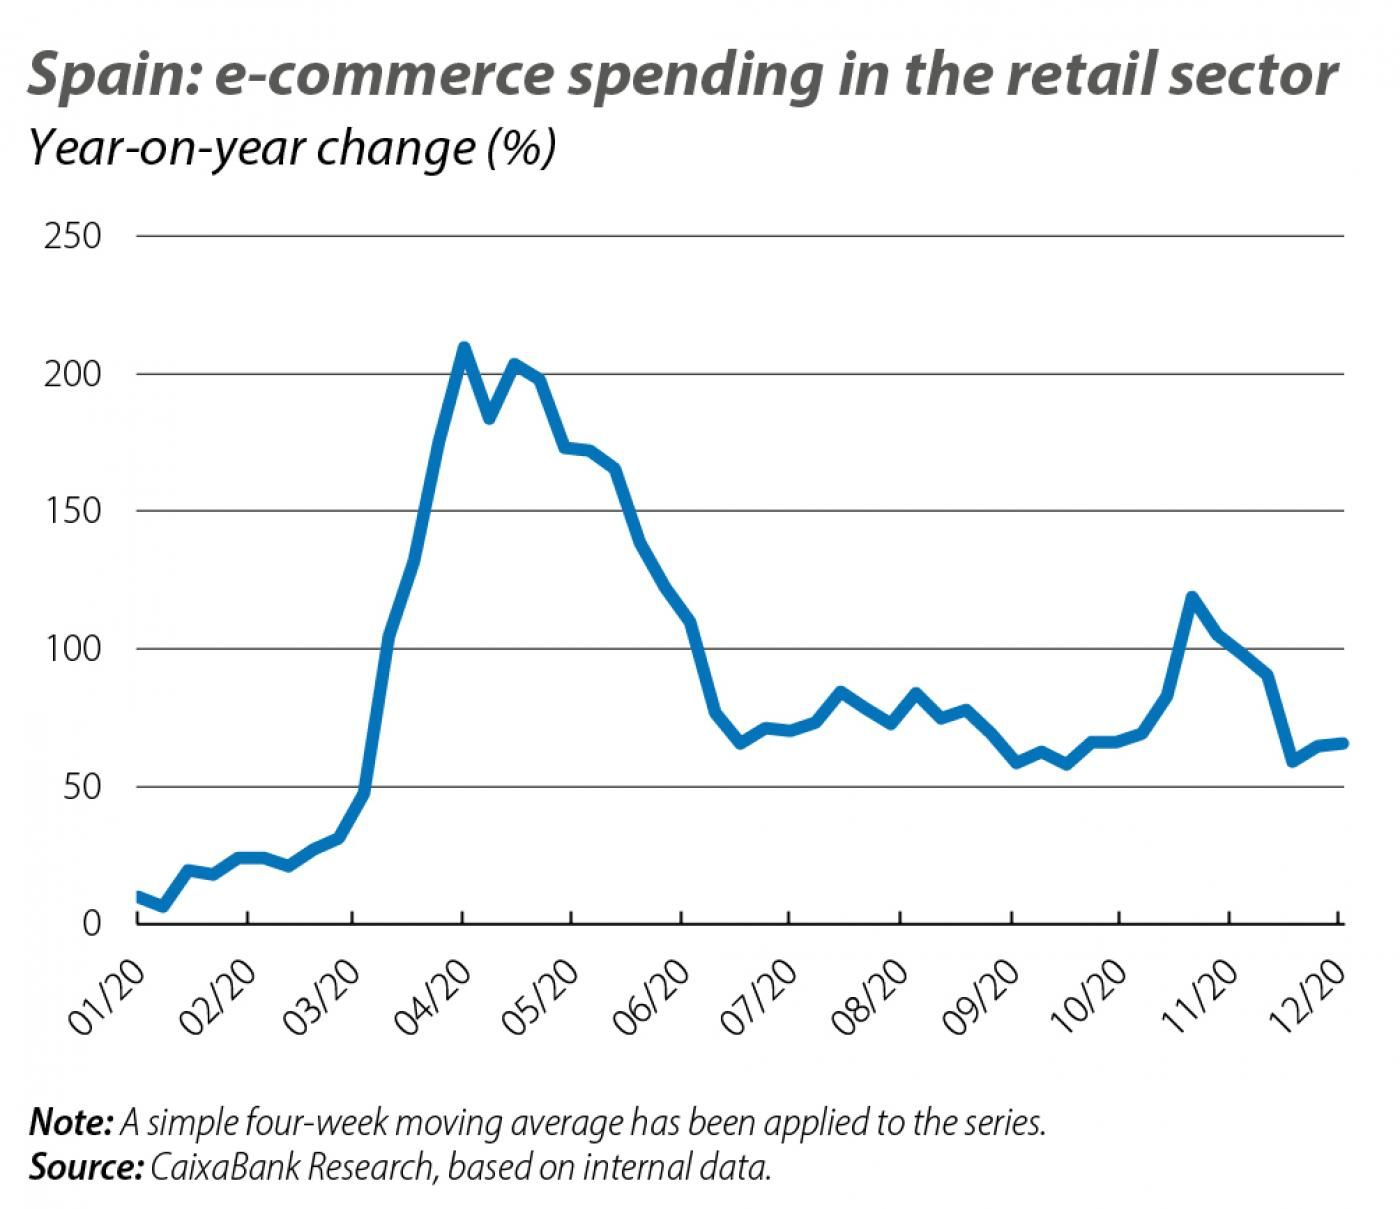 Spain: e-commerce spending in the retalil sector